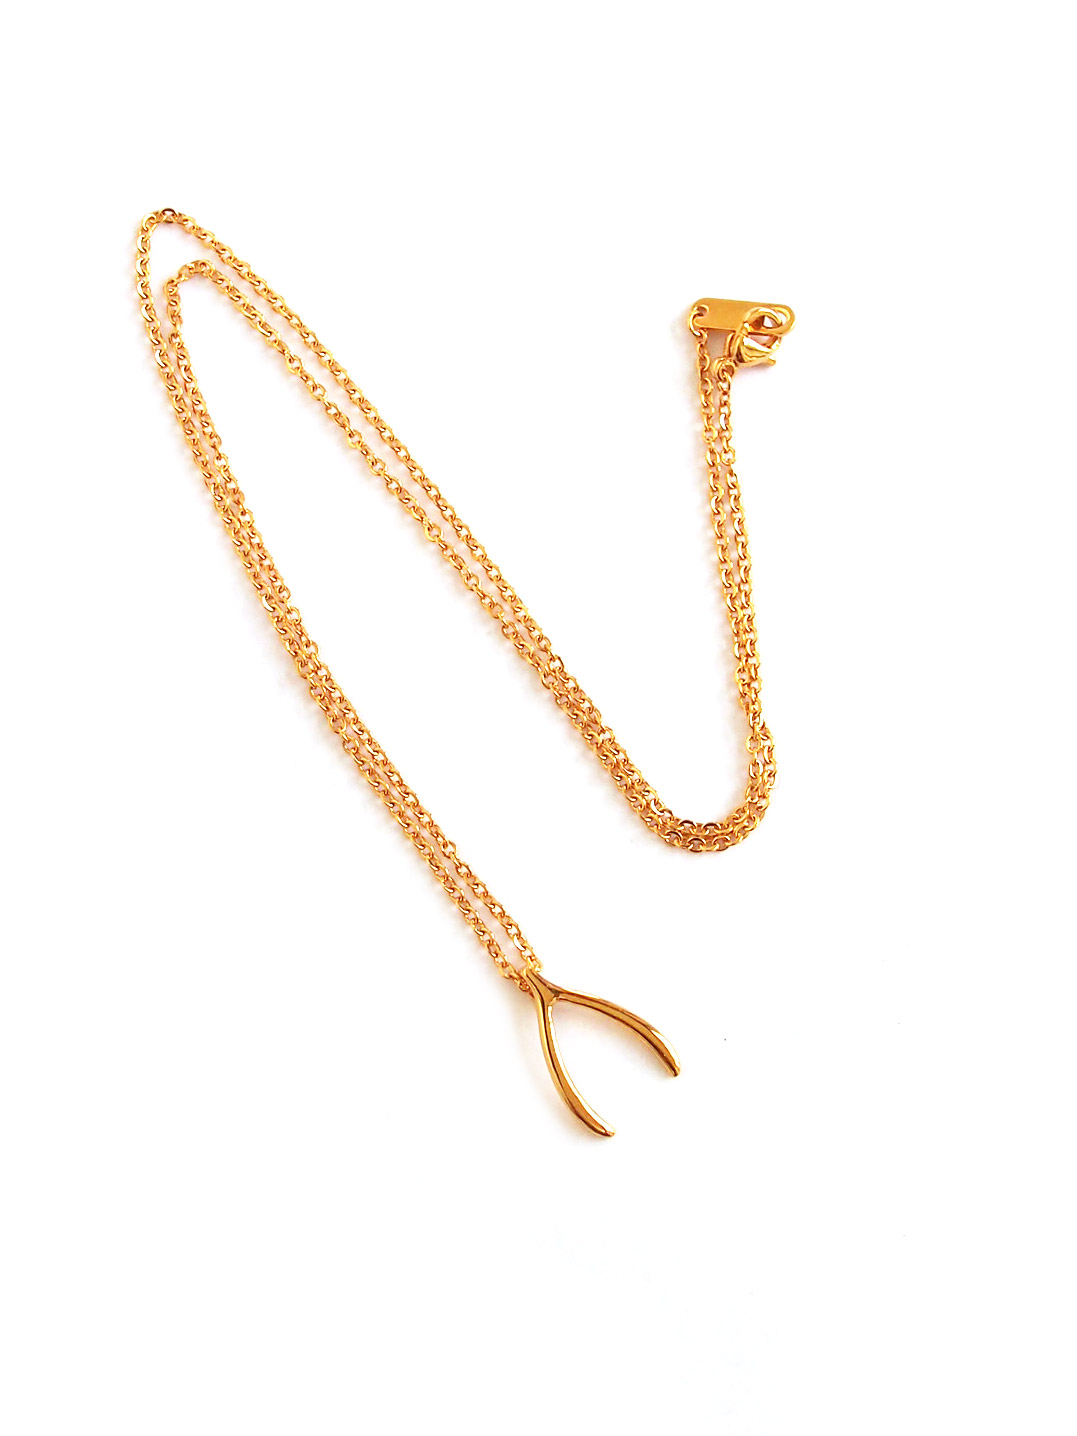 Stainless steel lucky wishbone necklace in gold arva acc762 lucky wishbone necklace in gold 7 aloadofball Gallery